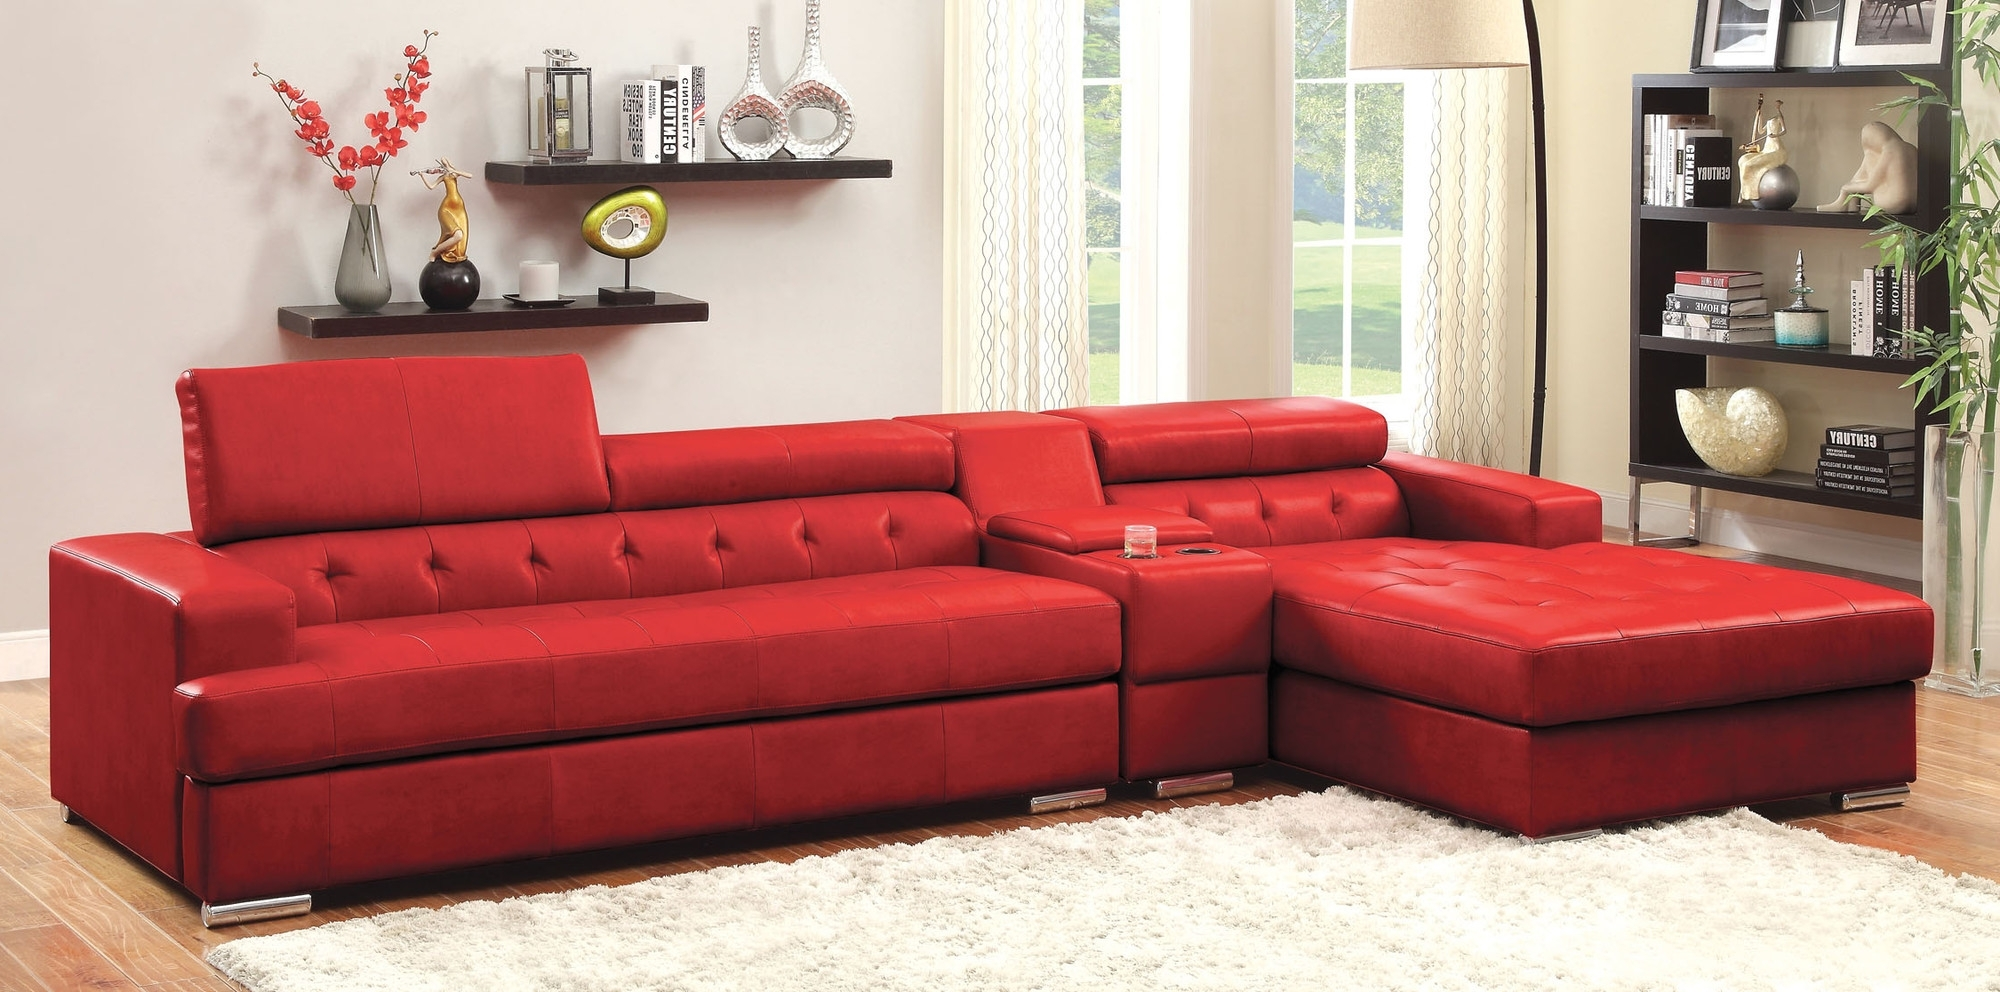 Well Known Red Sleeper Sofas Throughout Fascinating L Shaped Red Vinyl Modern Sleeper Sofa Stainless Steel (View 19 of 20)